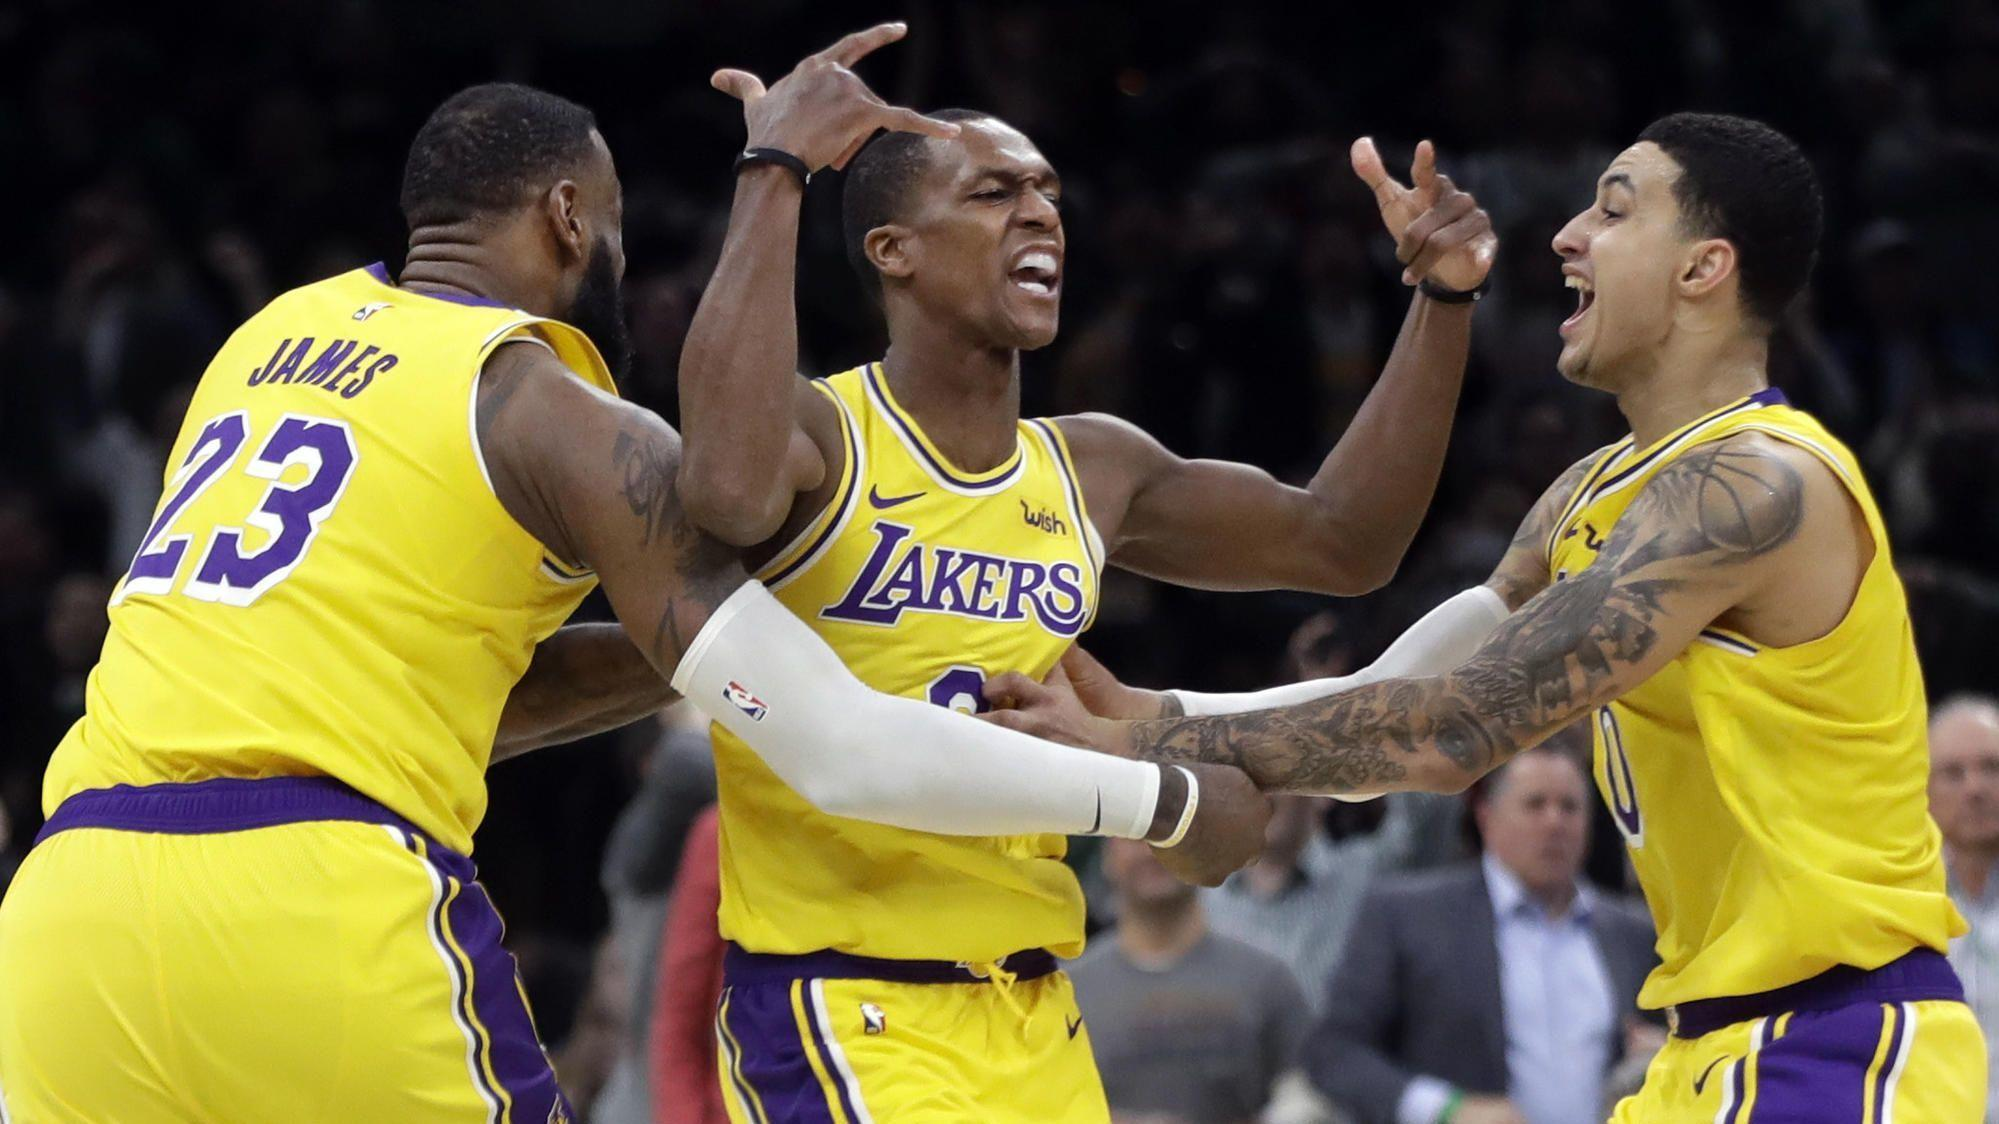 Five takeaways from the Lakers' 129-128 win over the Boston Celtics